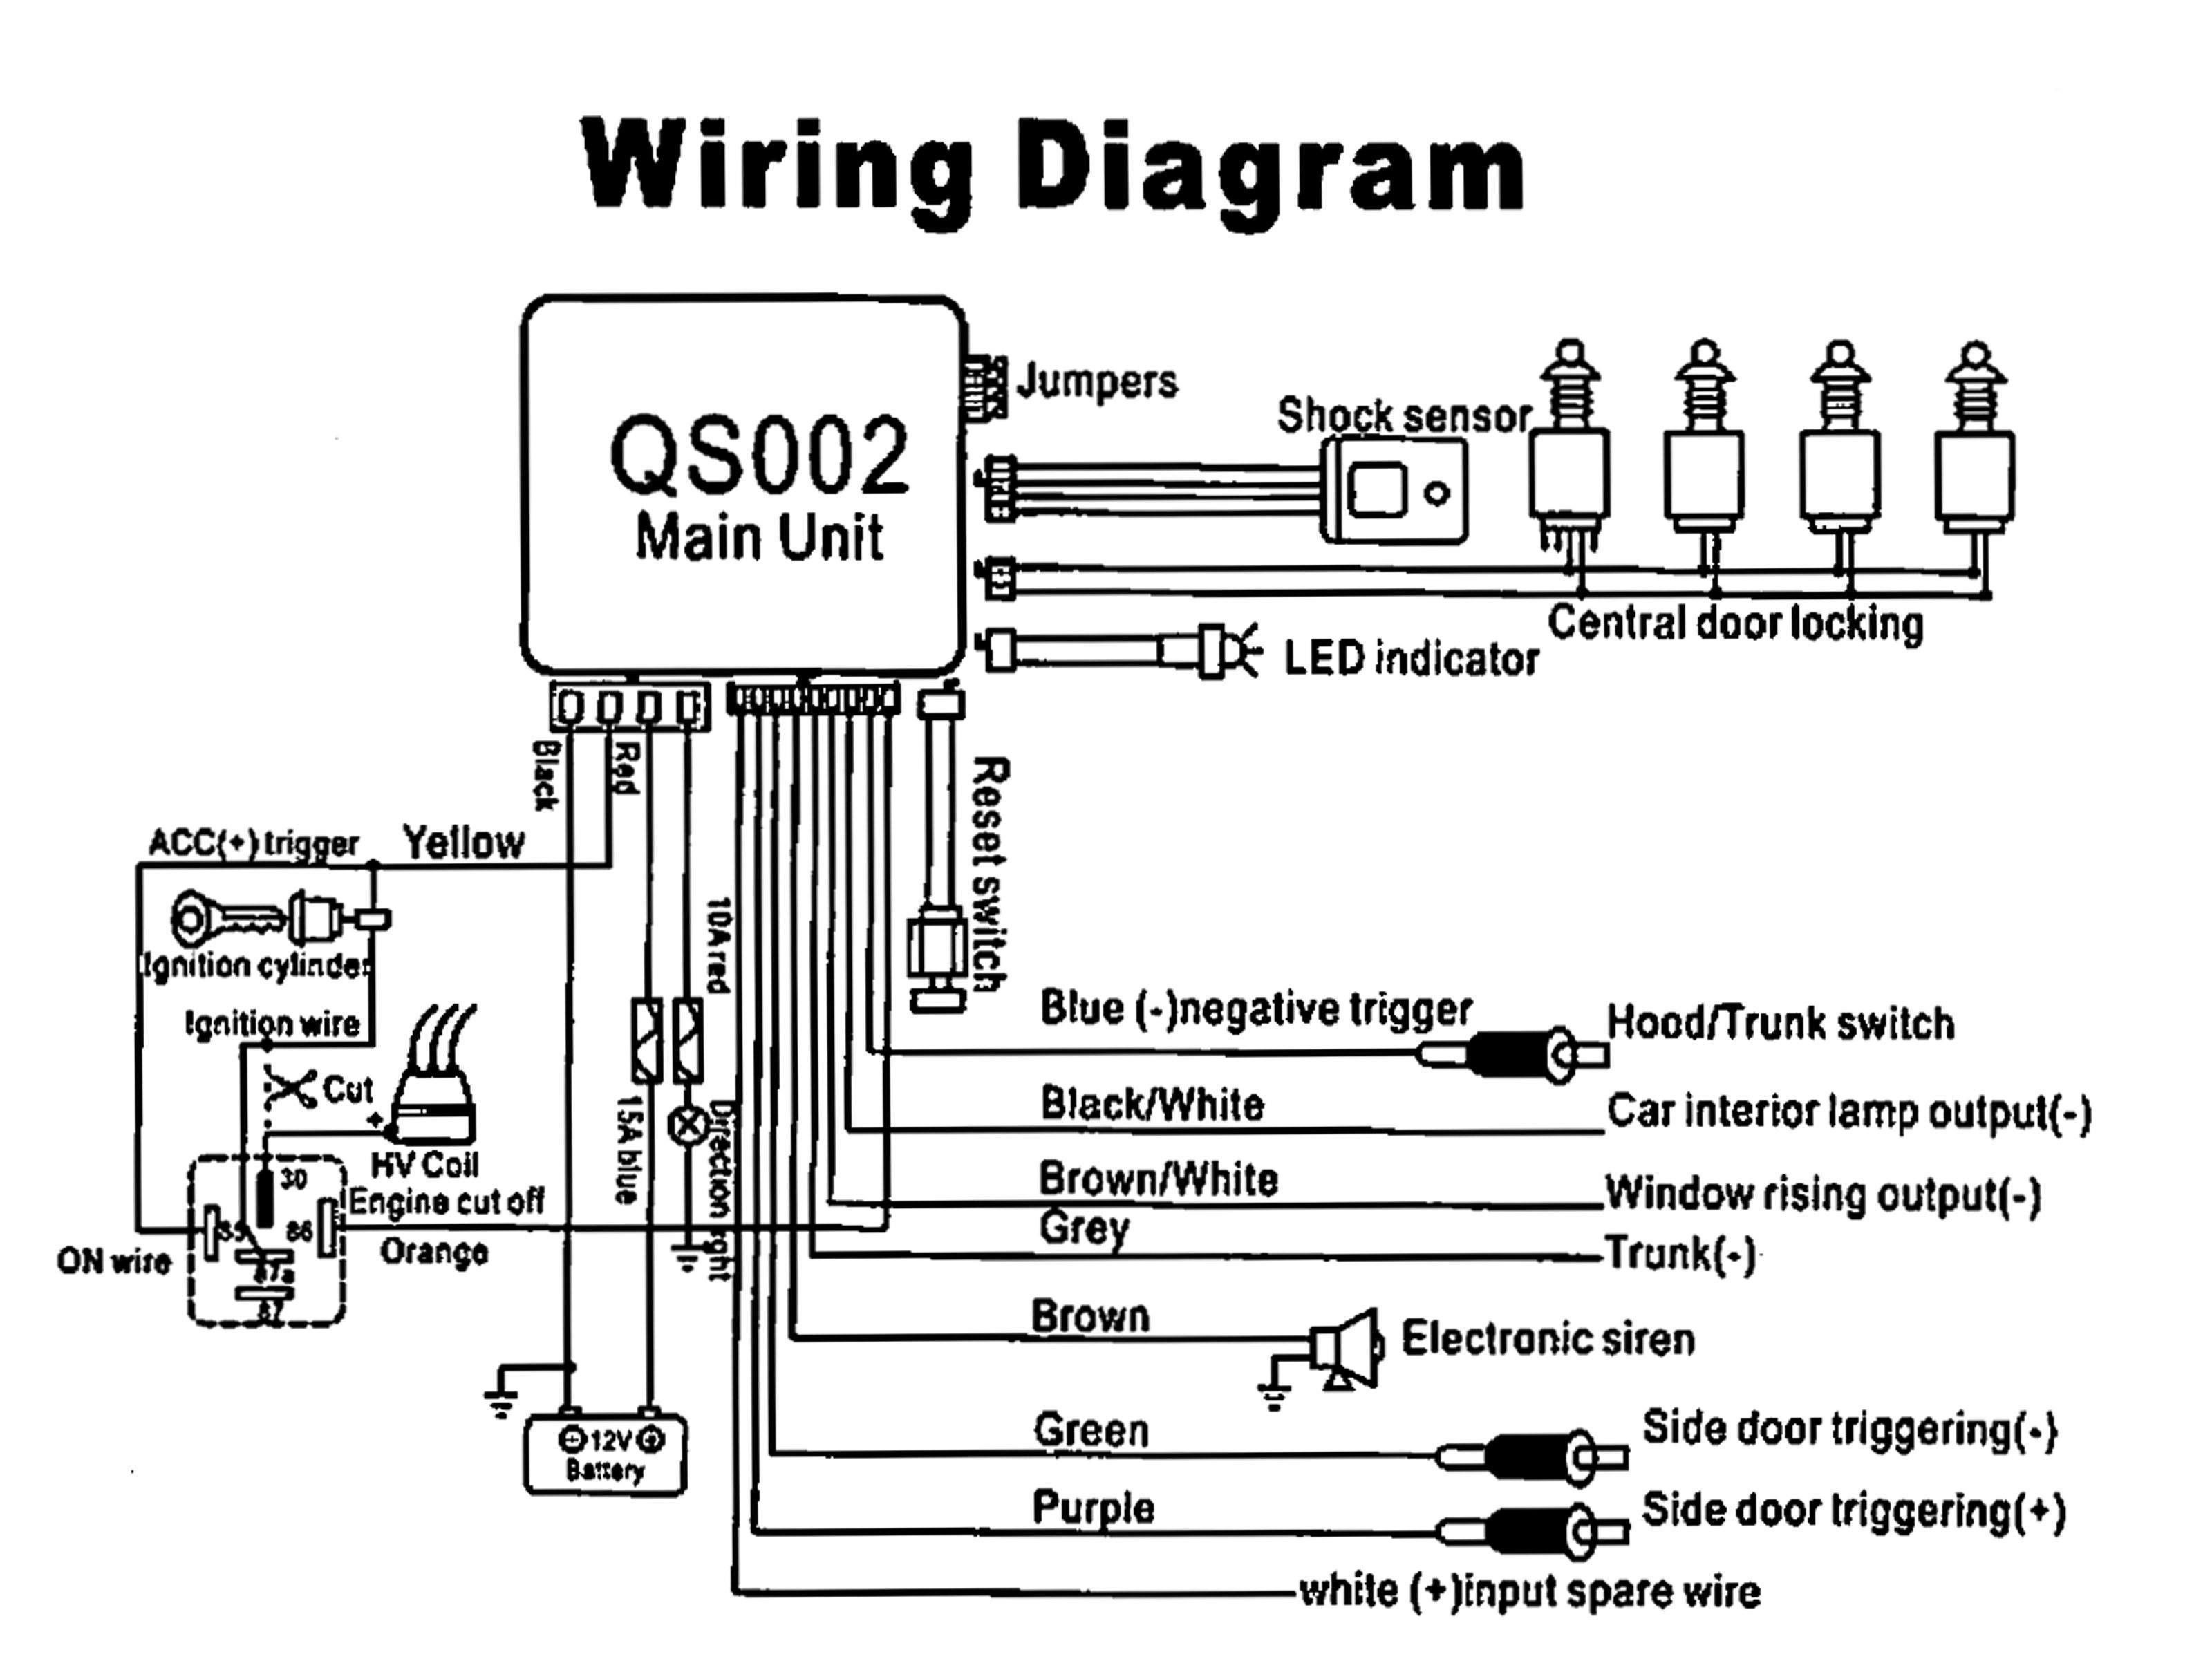 Inspirational Vehicle Wiring Diagram App #diagrams #